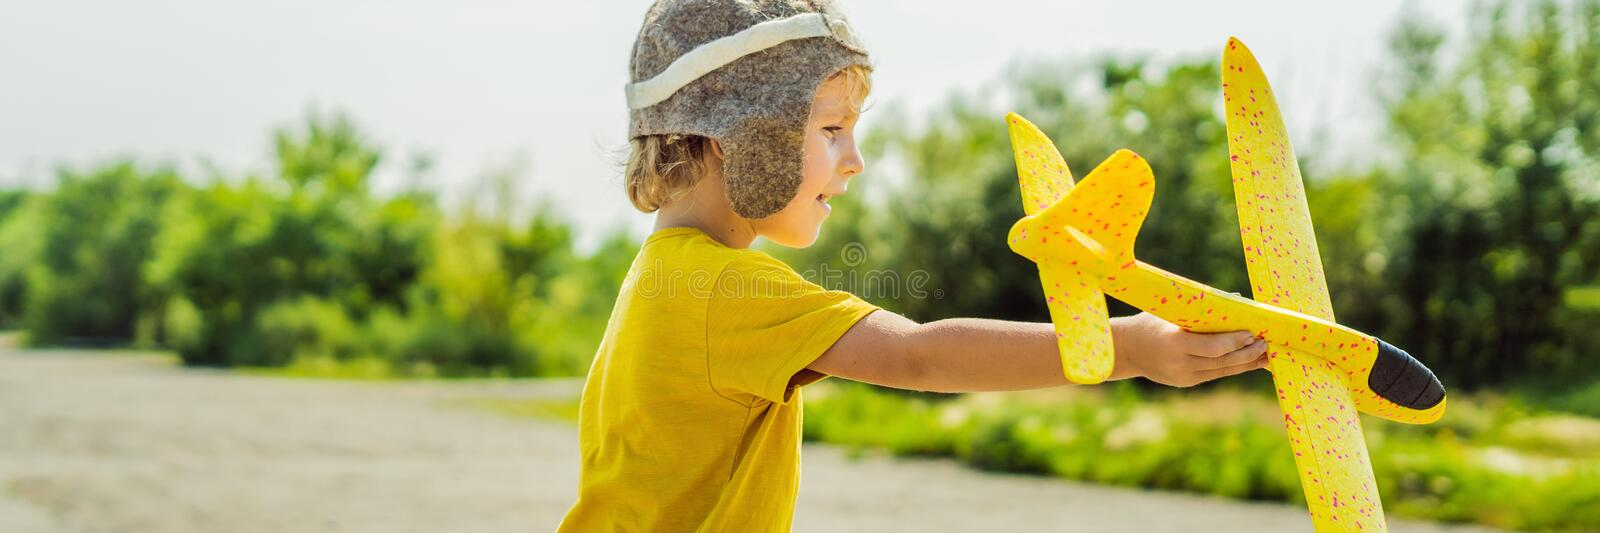 Happy kid playing with toy airplane against old runway background. Traveling with kids concept BANNER, LONG FORMAT. Happy kid playing with toy airplane against stock photo